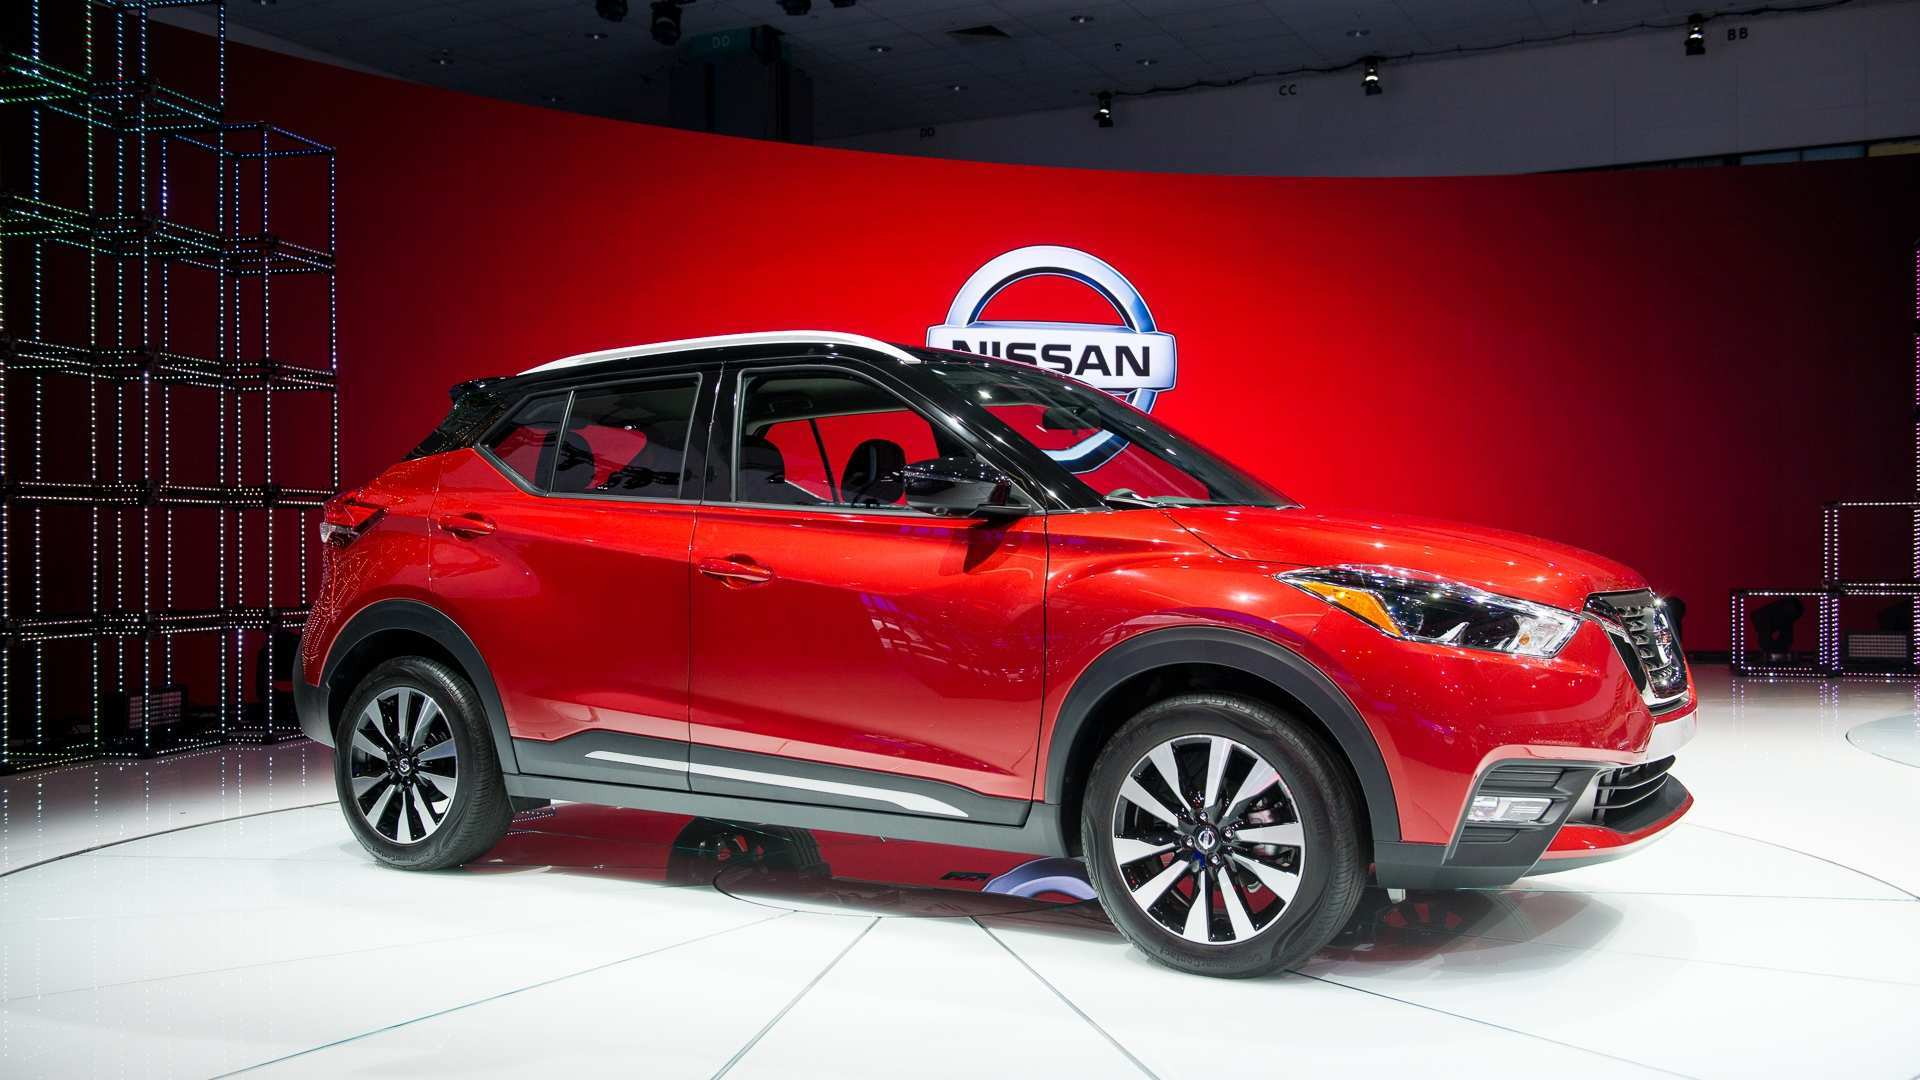 76 All New Nissan Kicks 2020 Exterior Rumors for Nissan Kicks 2020 Exterior